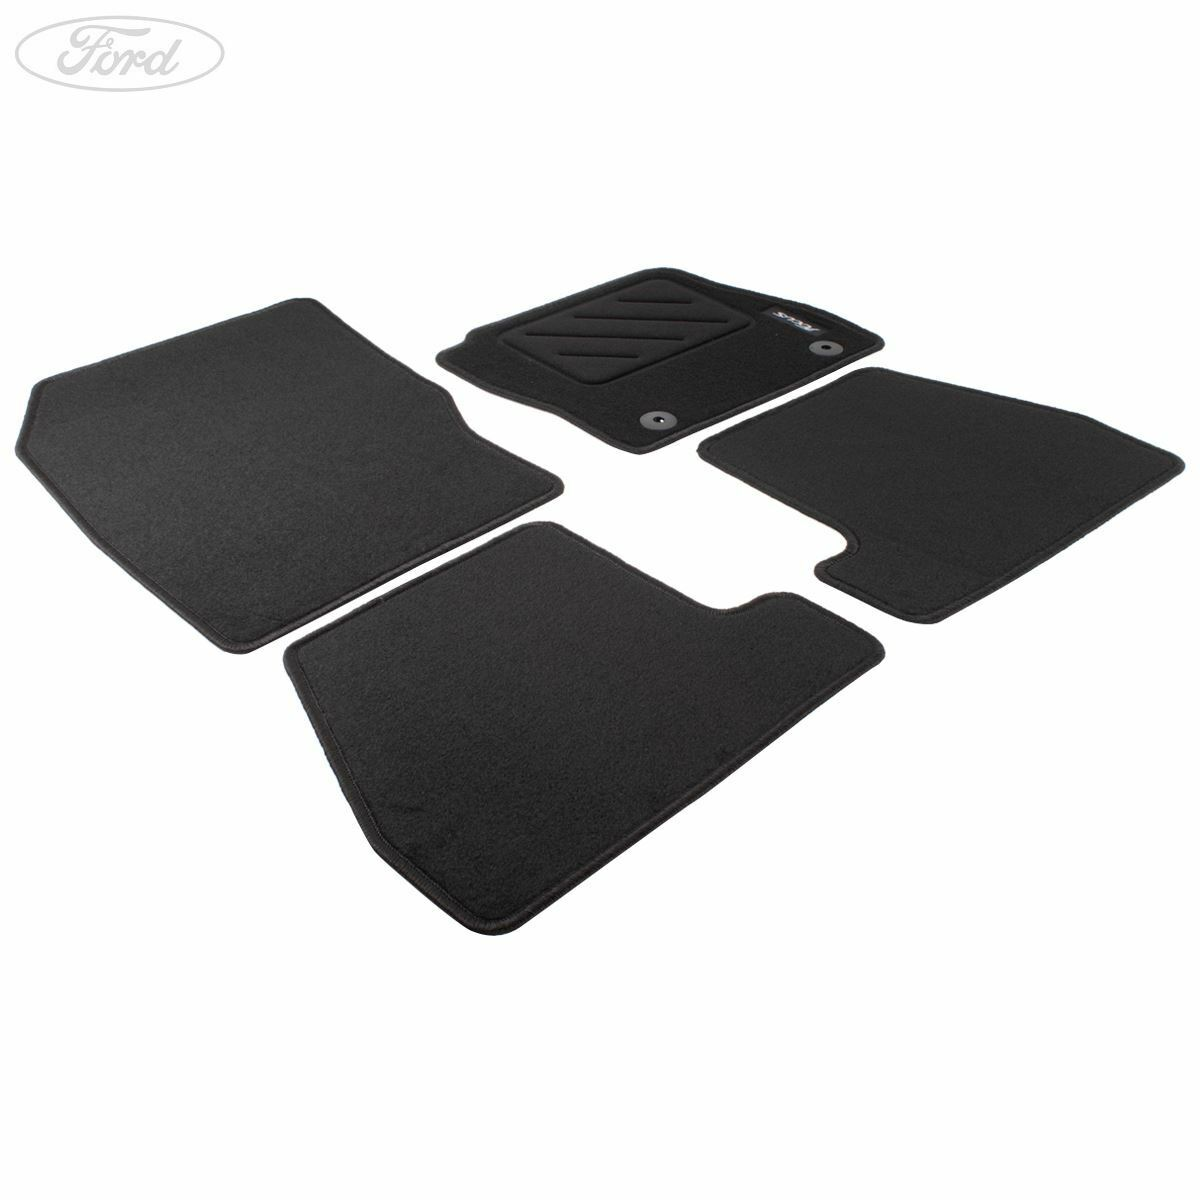 Genuine Ford Focus MK3 Front & Rear Floor Mats Carpet Set of 4 Black ST  1893548 1 of 4FREE Shipping ...